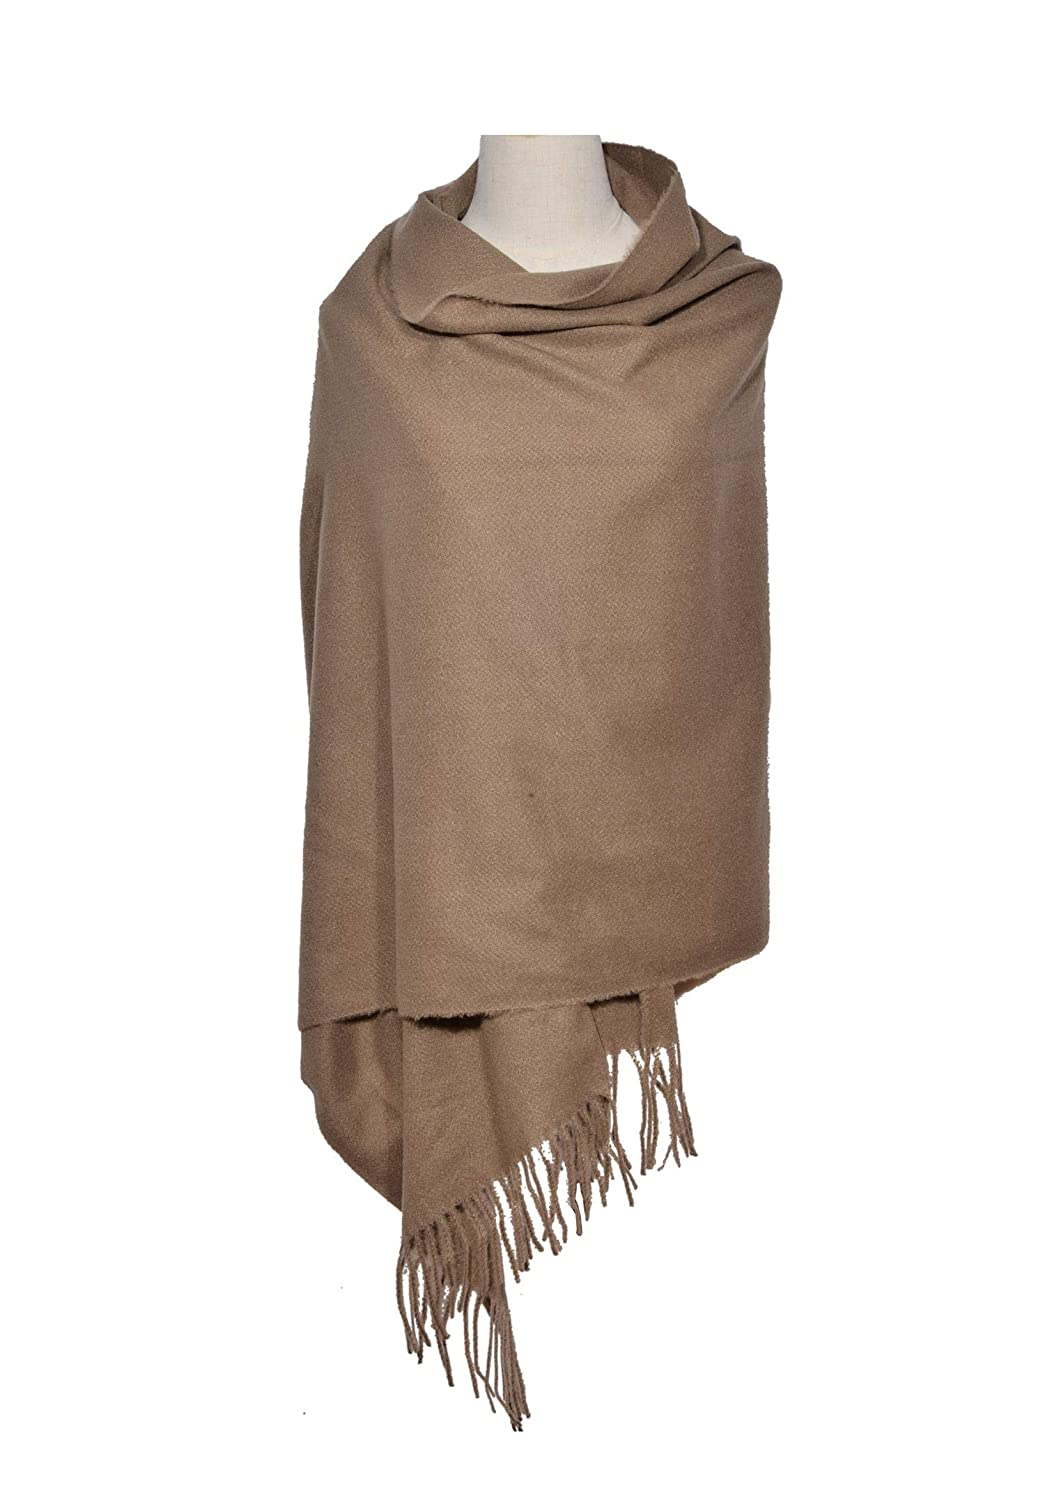 Woogwin Womens Warm wrap Shawl Solid Winter Scarves Large Fashion Scarf for Ladies darkgreen